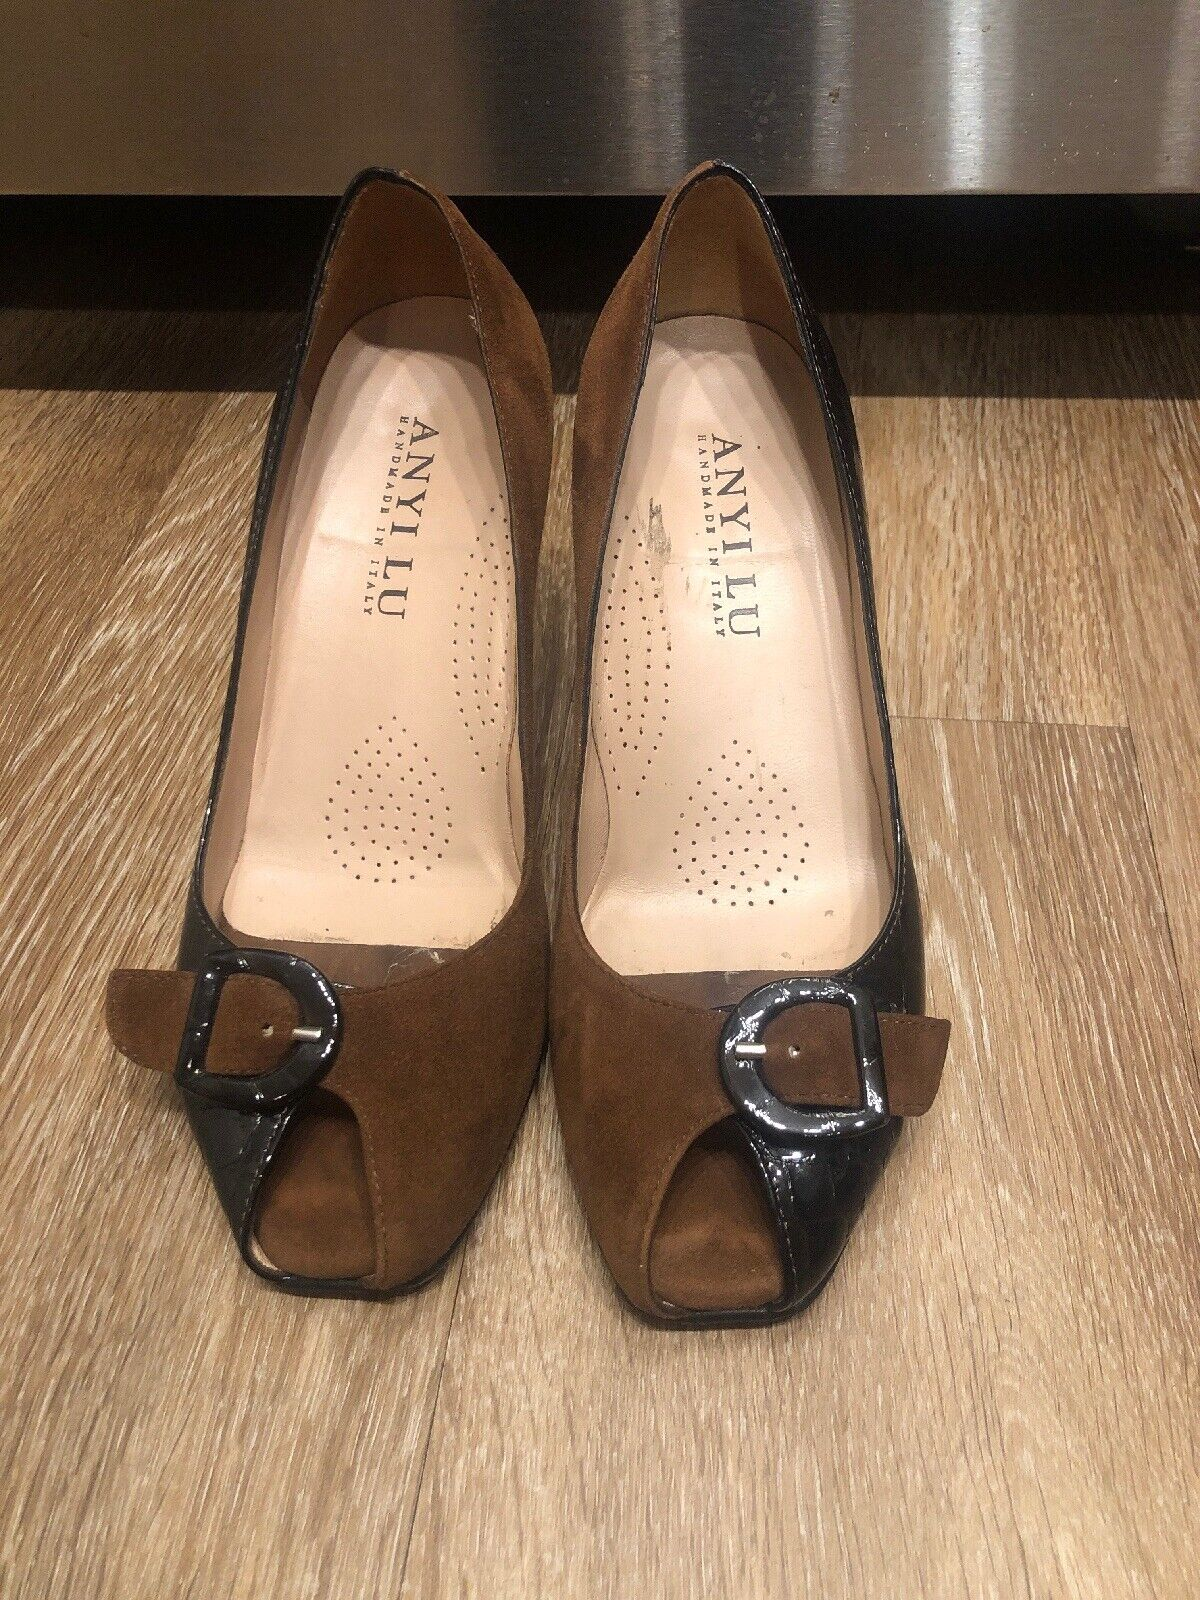 Anyi Lu Brown Suede Patent Leather Peep Toe Pumps Women's 37 Italy